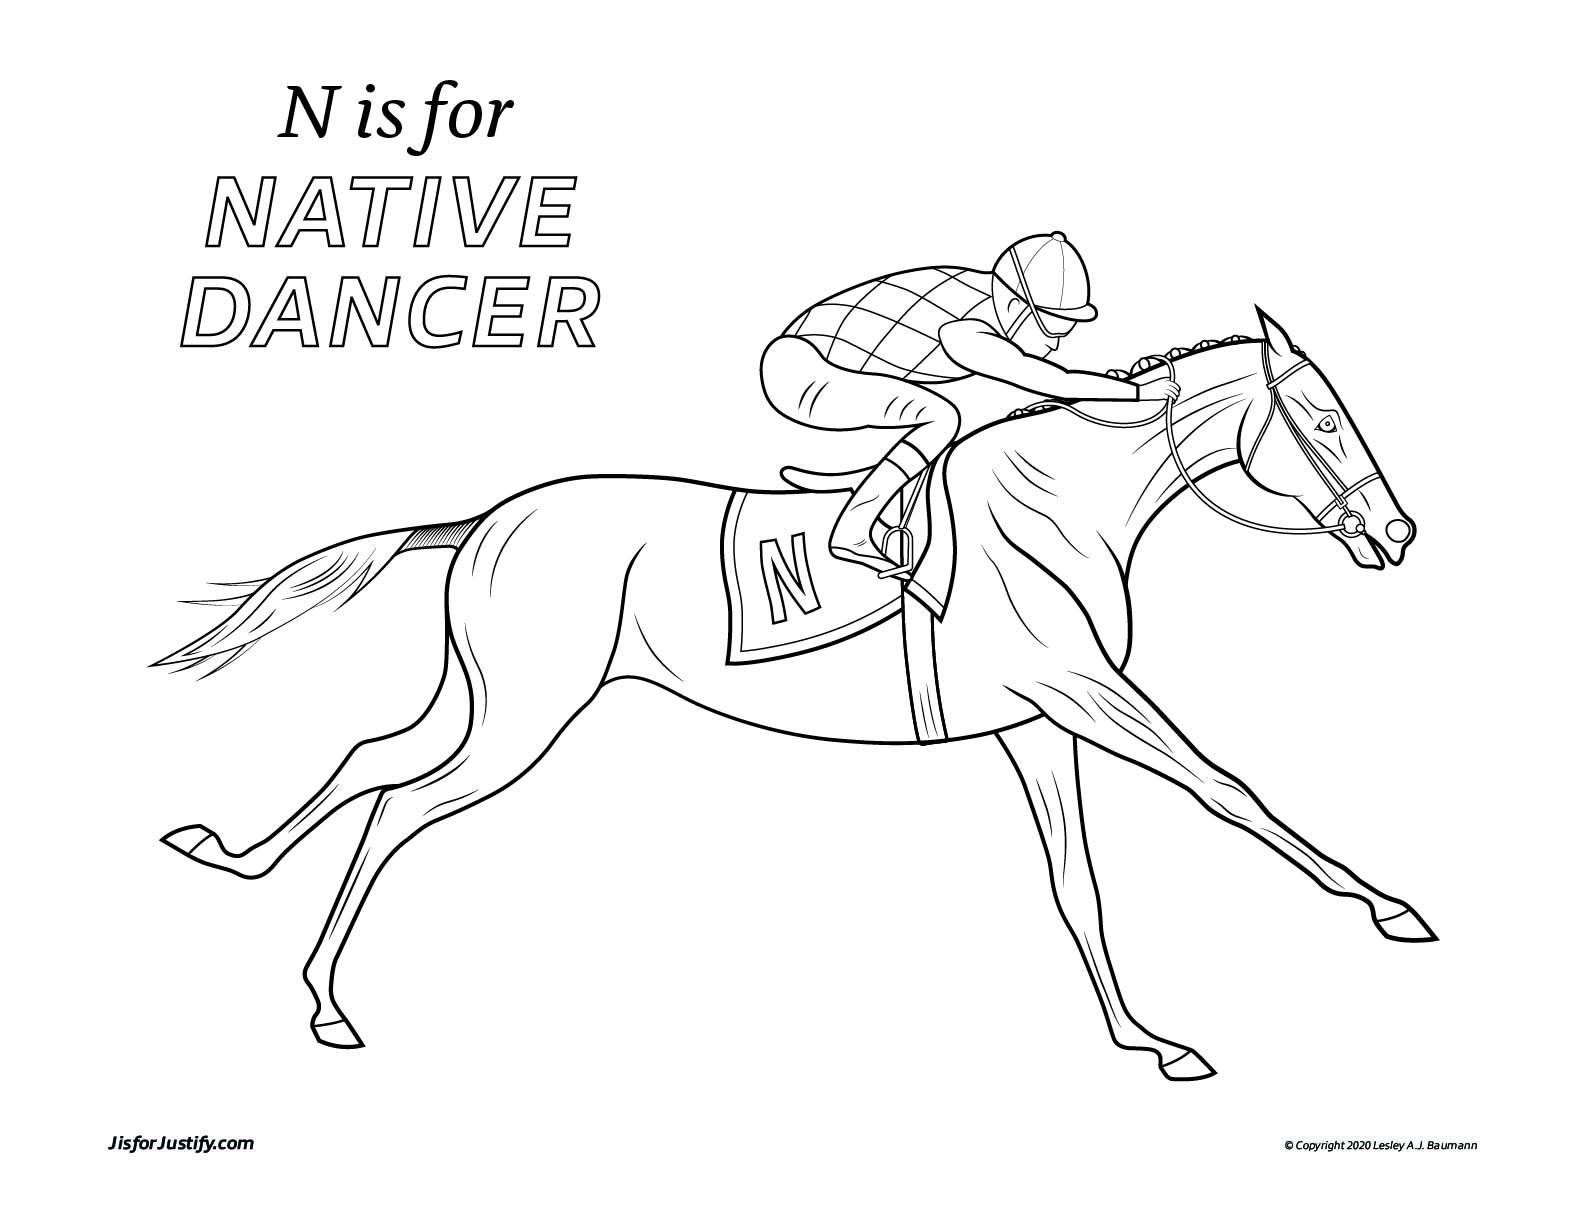 Coloring_Page_Native_Dancer